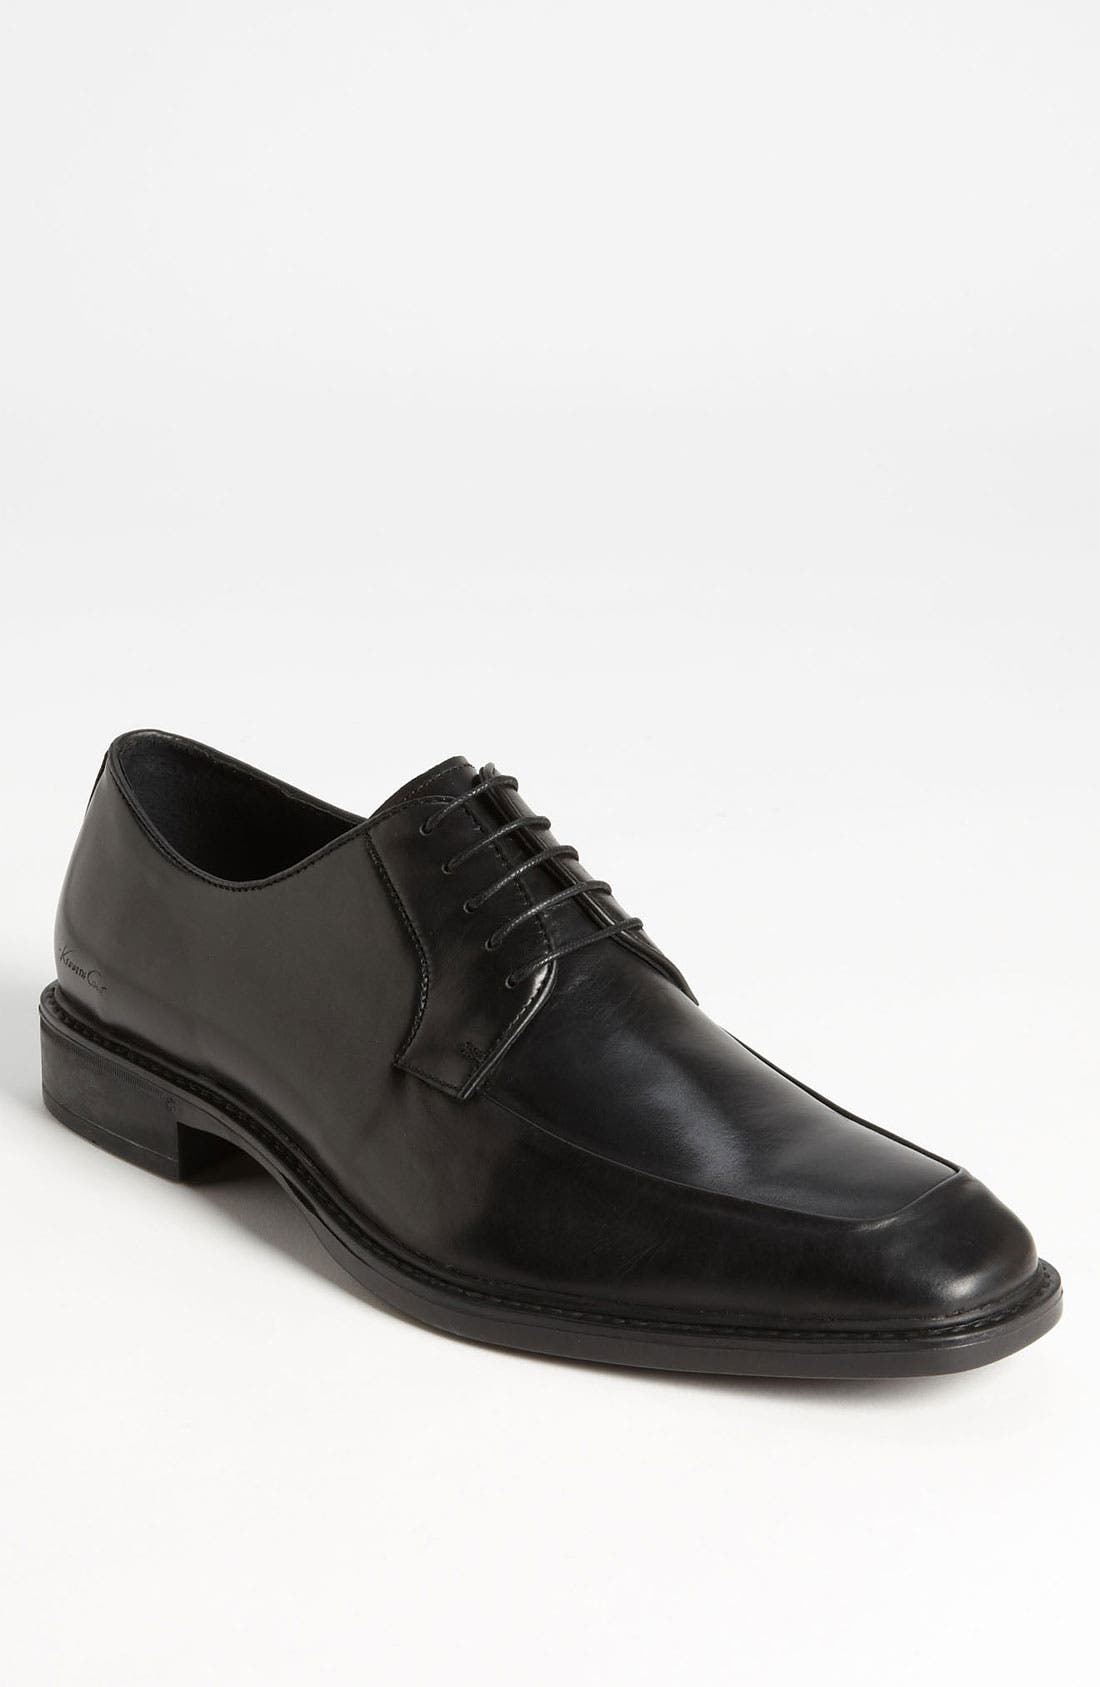 Main Image - Kenneth Cole New York 'Style Out' Apron Toe Derby